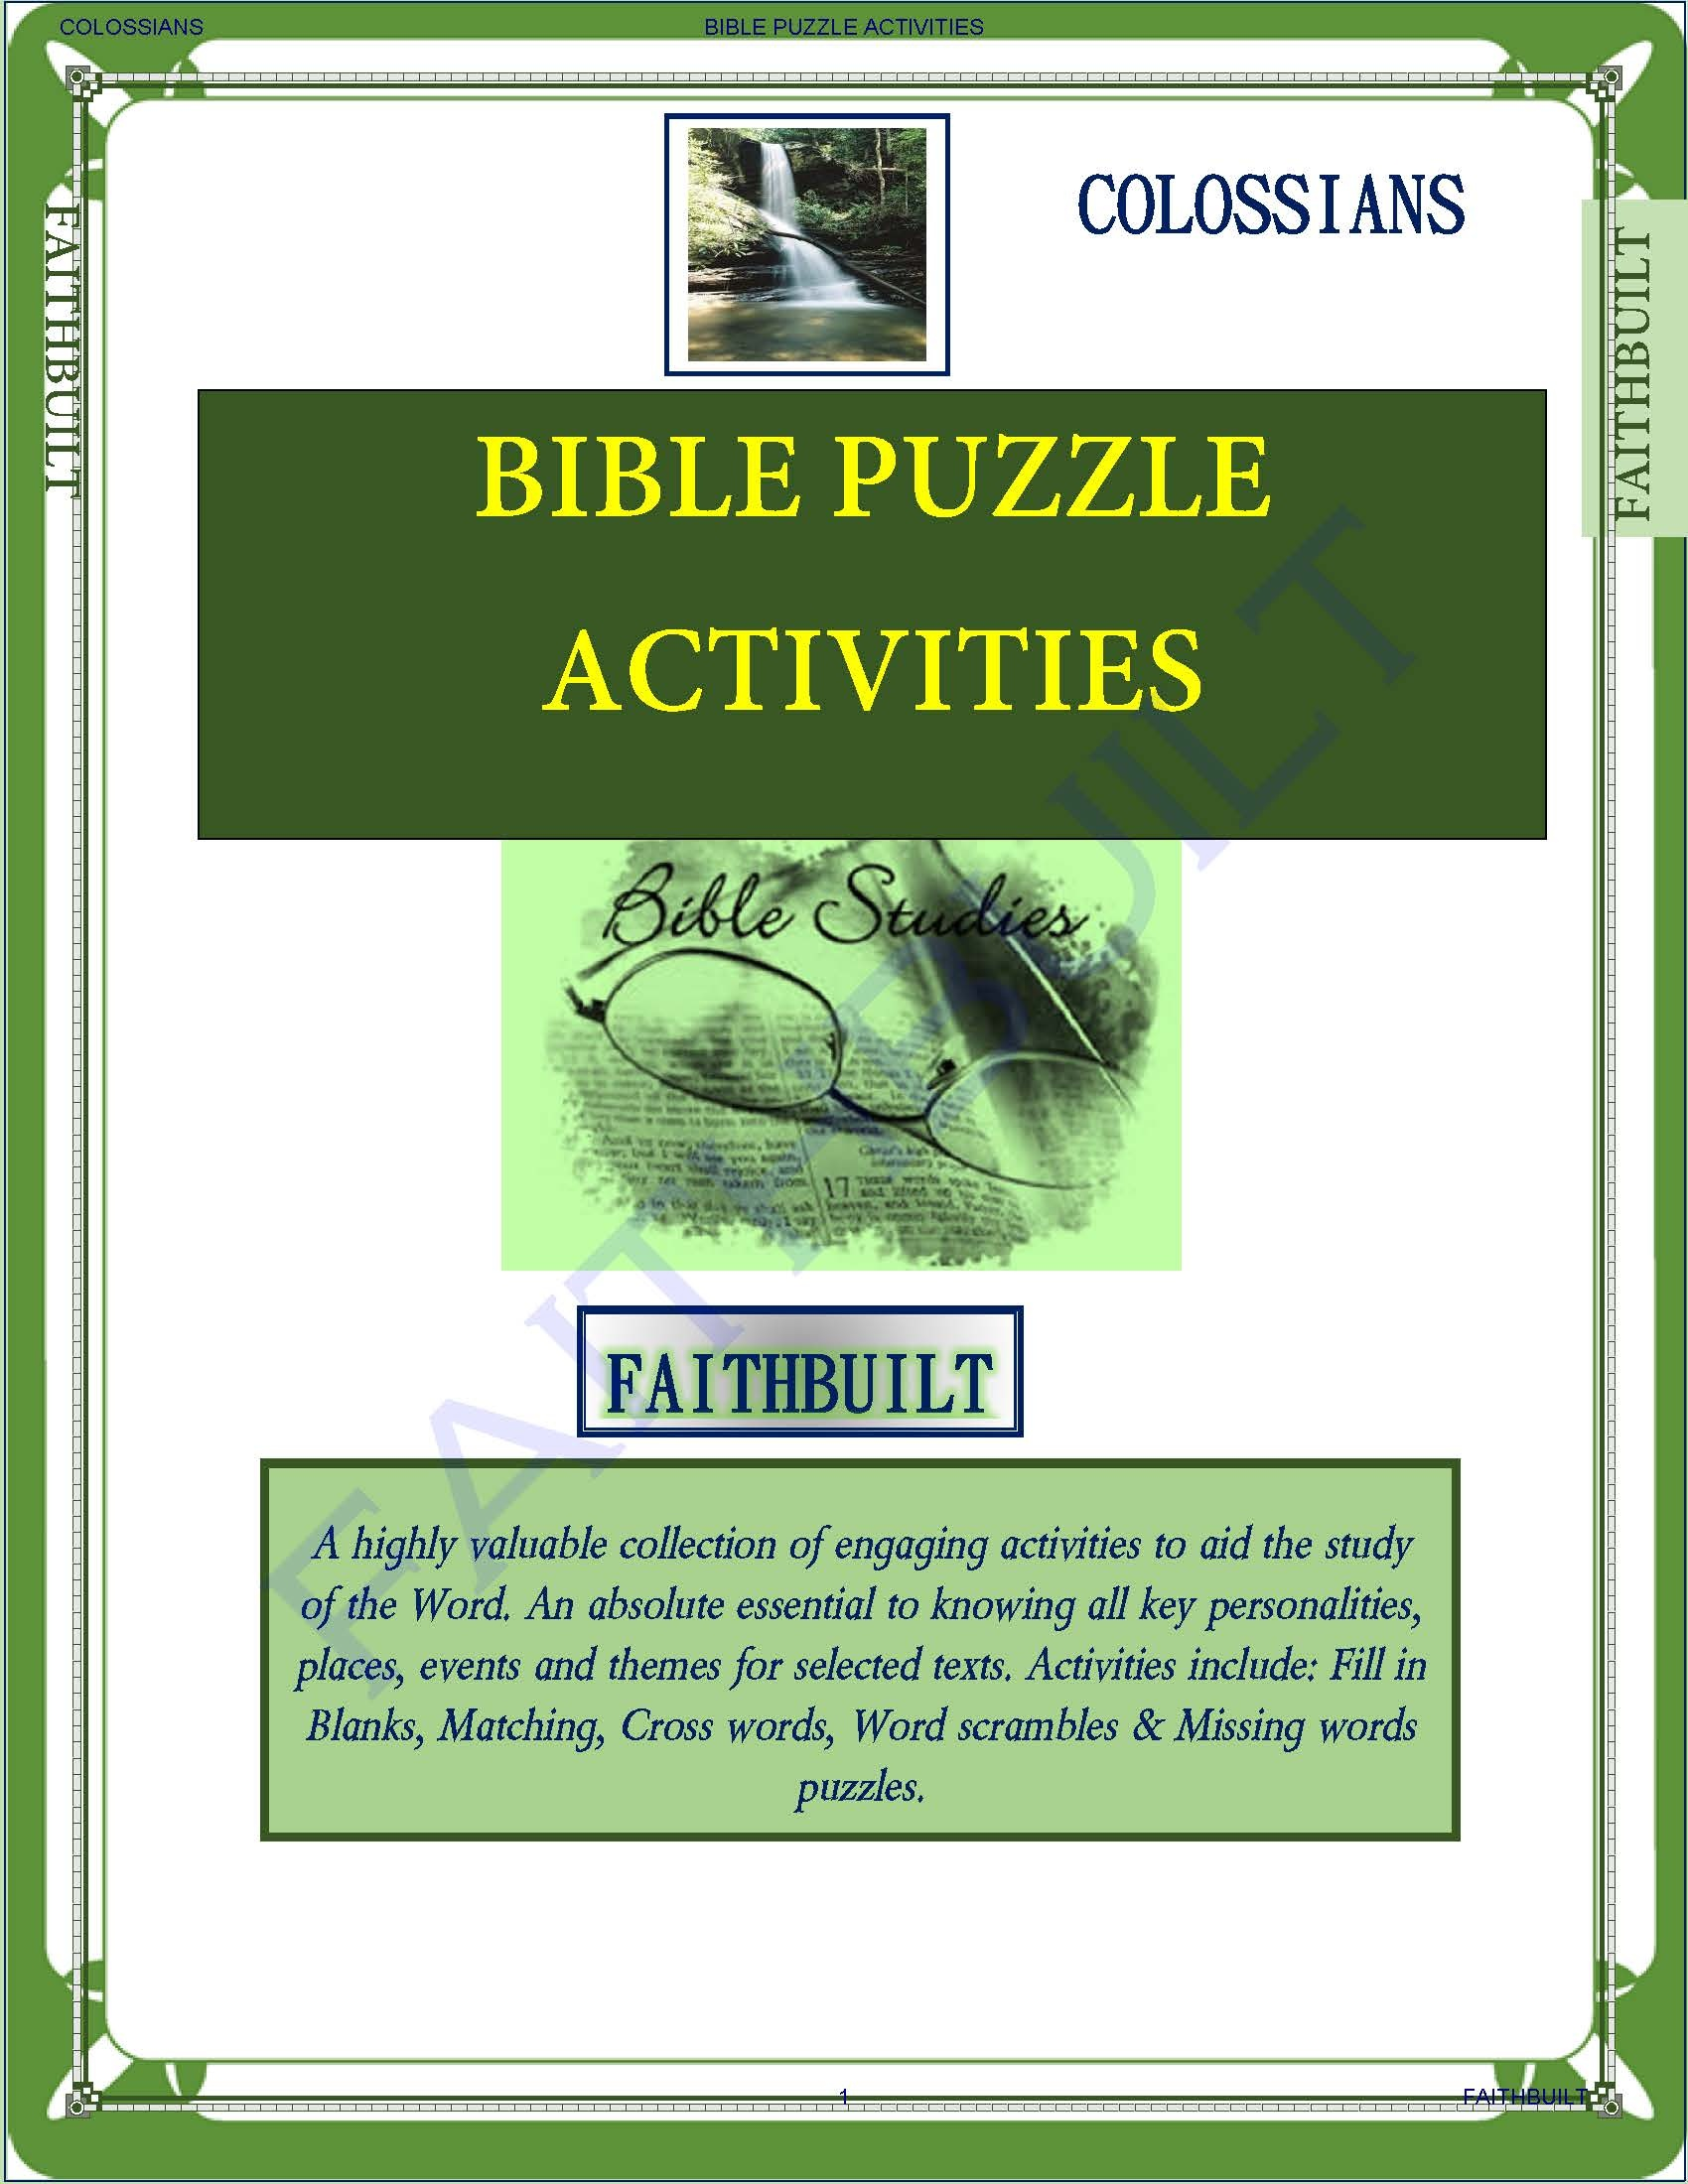 COLOSSIANS - ACTIVITIES & PUZZLES